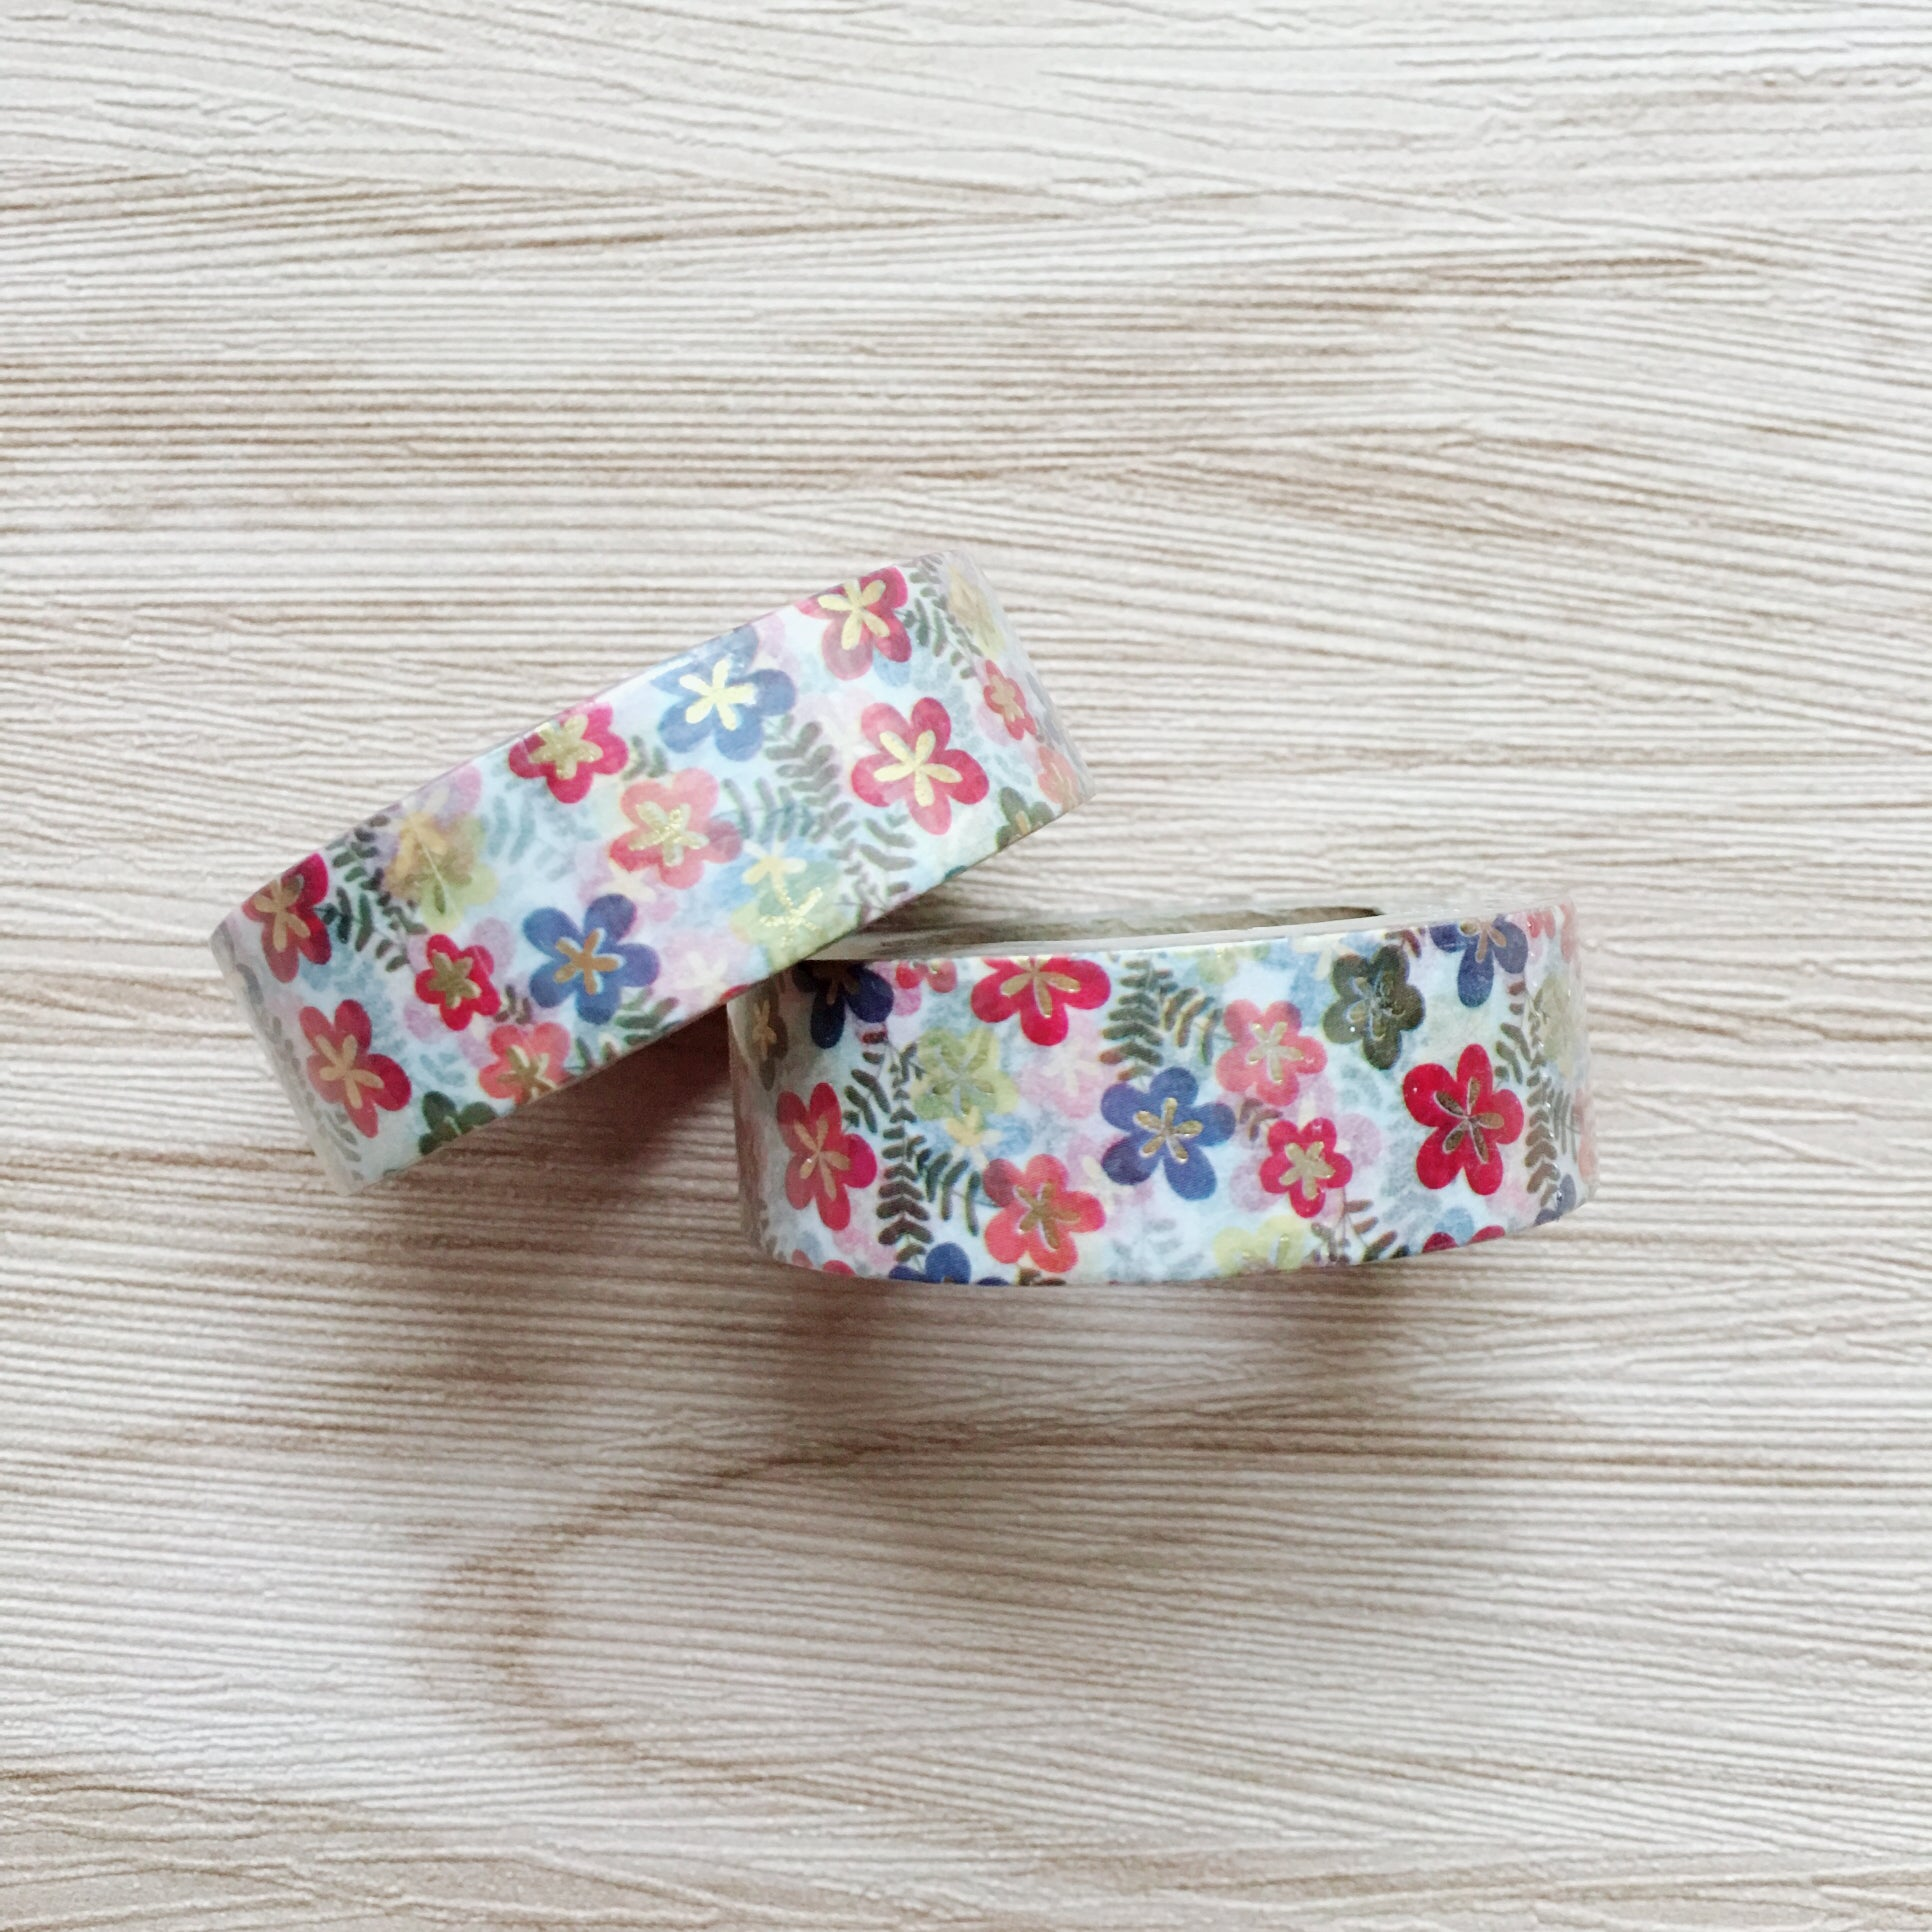 Gold Foiled Floral Washi Tape - white background